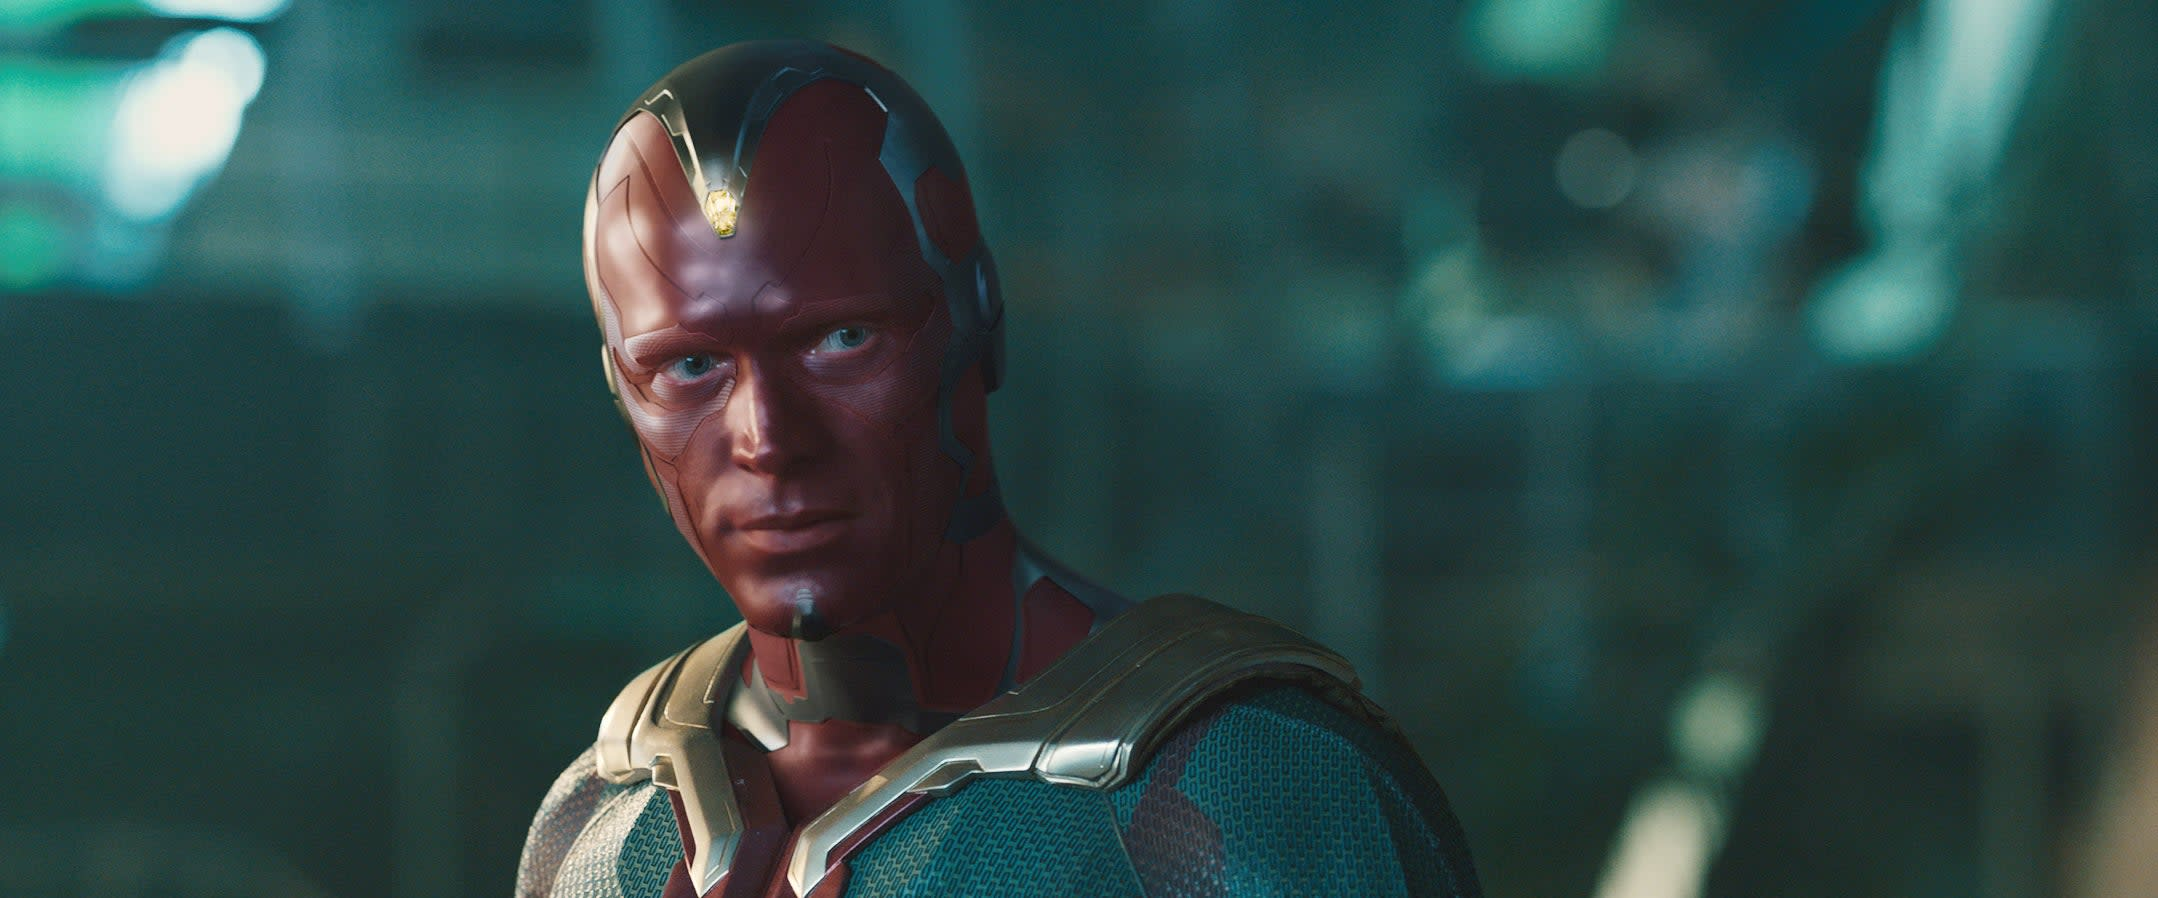 """Paul Bettany as Vision in """"Avengers: Age of Ultron"""""""